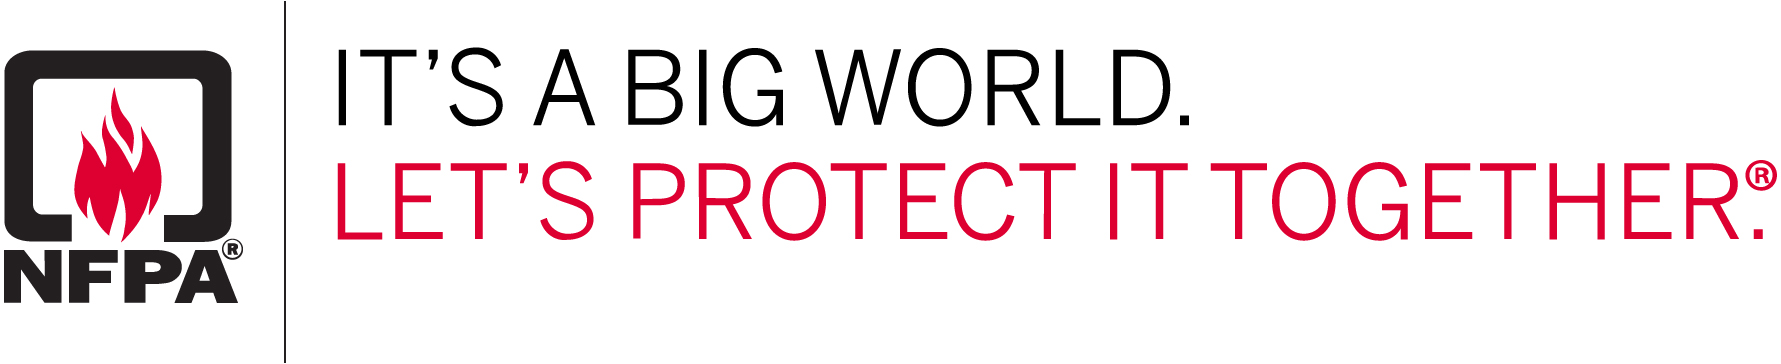 NFPA - It's a big world, let's protect it together